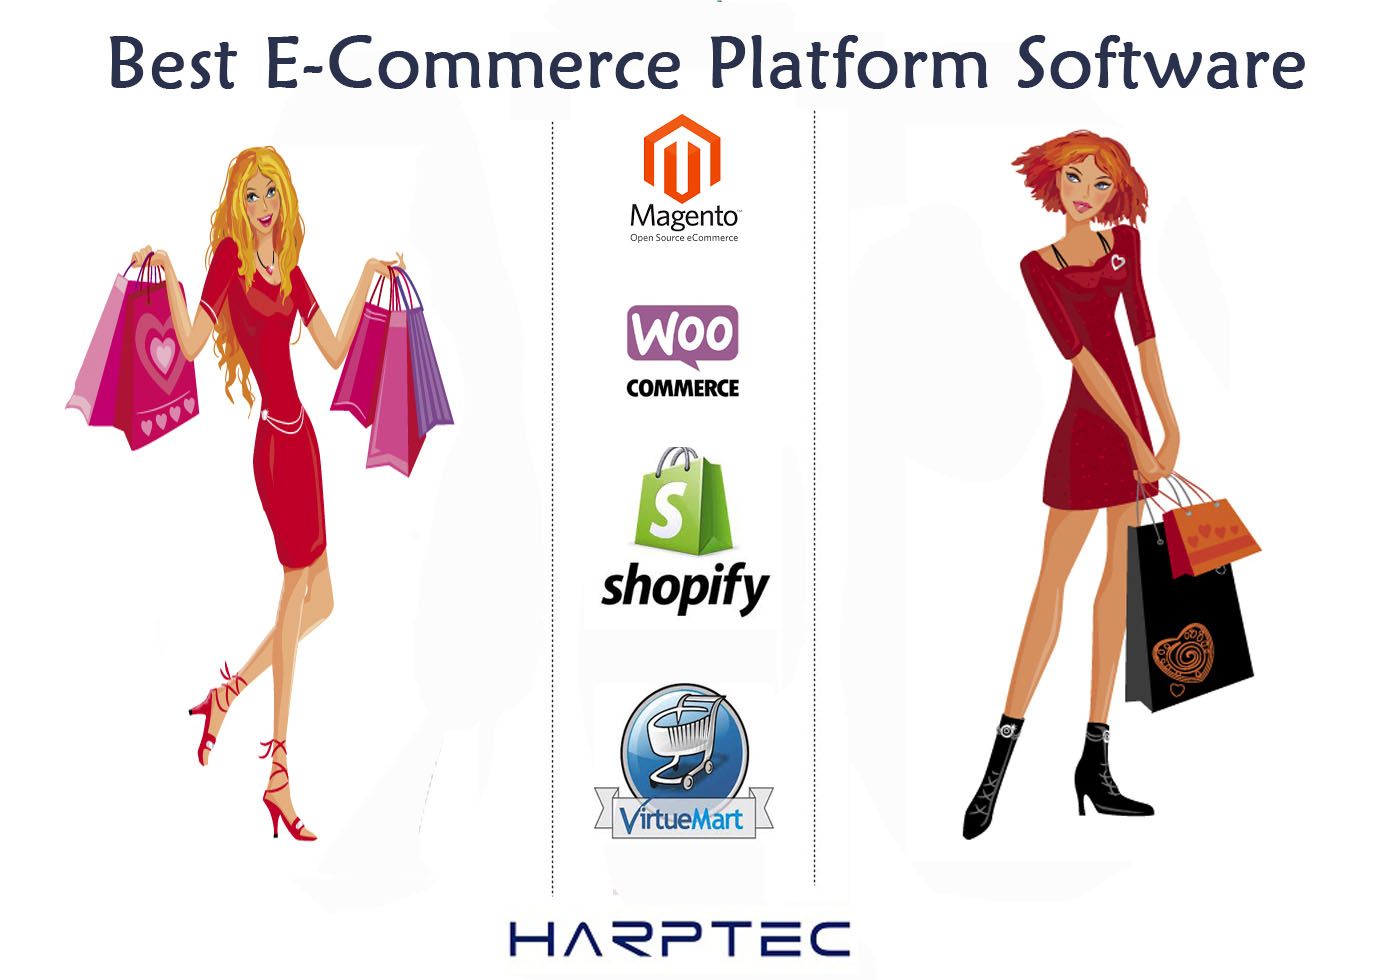 E-commerce platform software